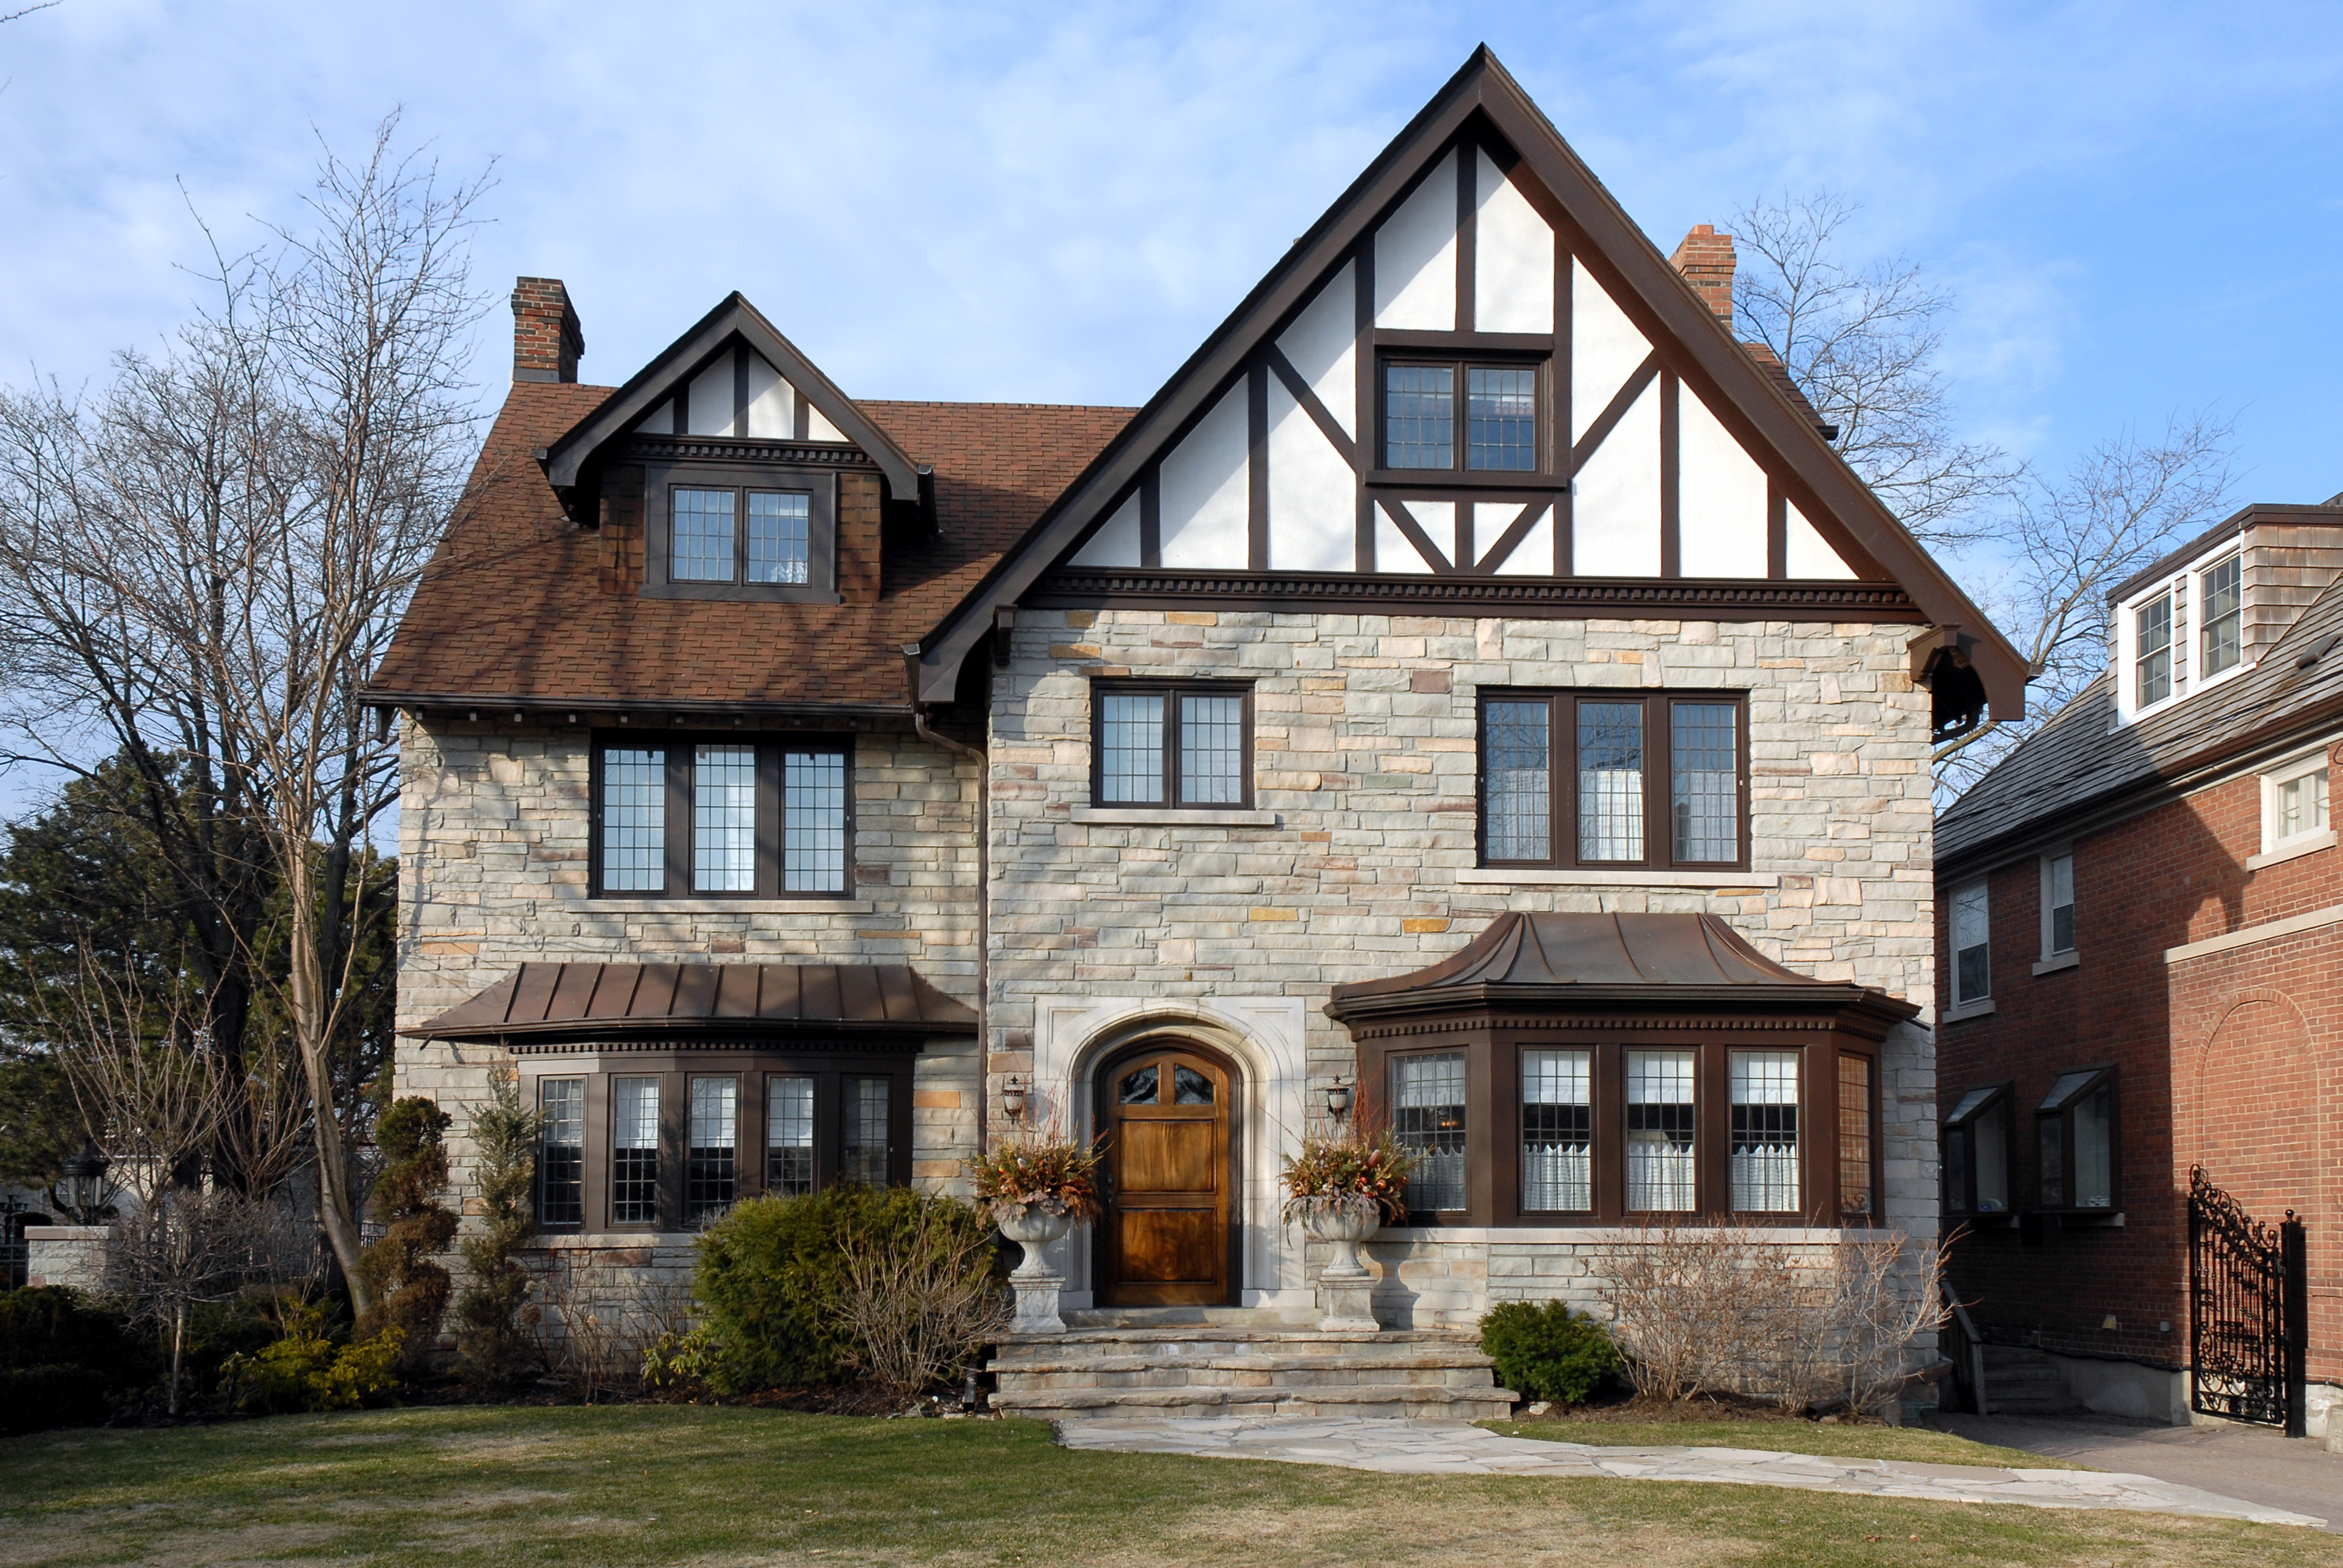 A Tudor style house in a downtown area with stone detailing and large front yard.